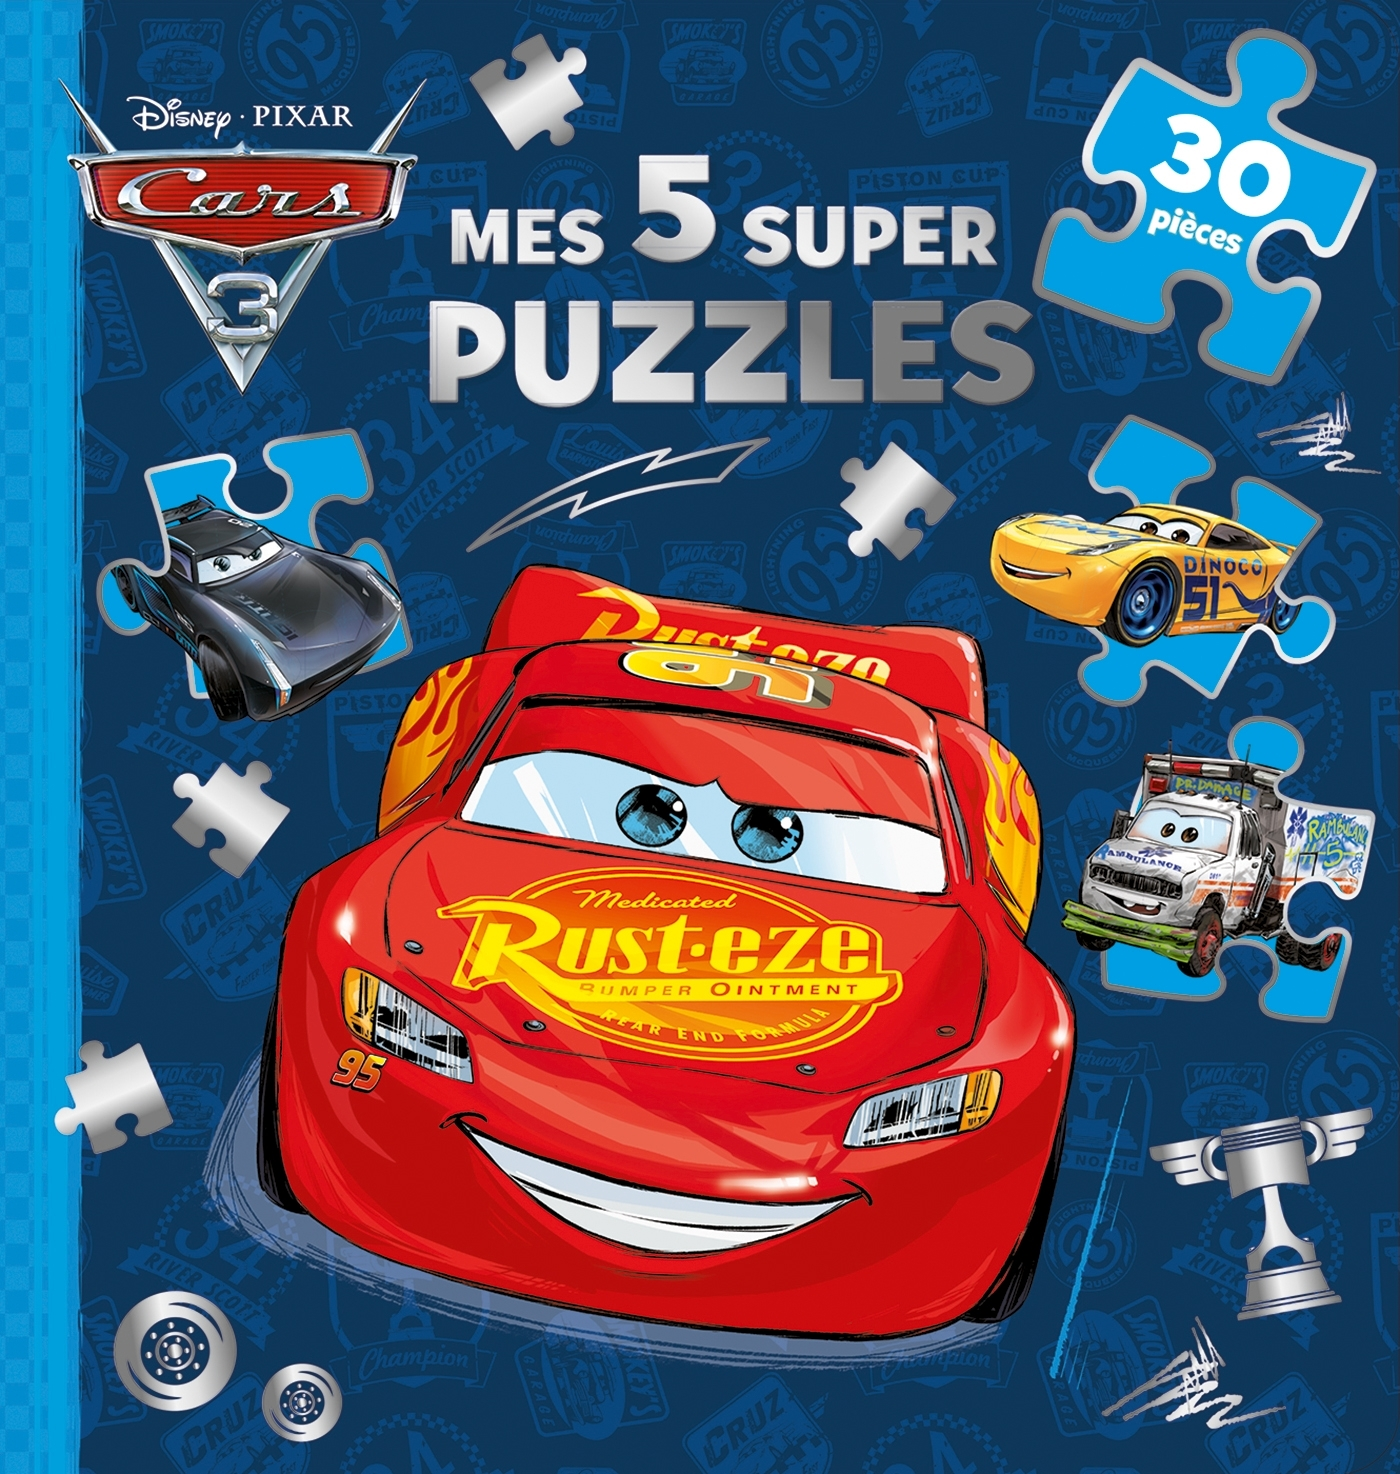 CARS 3 - MES 5 SUPERS PUZZLES 30 PIECES